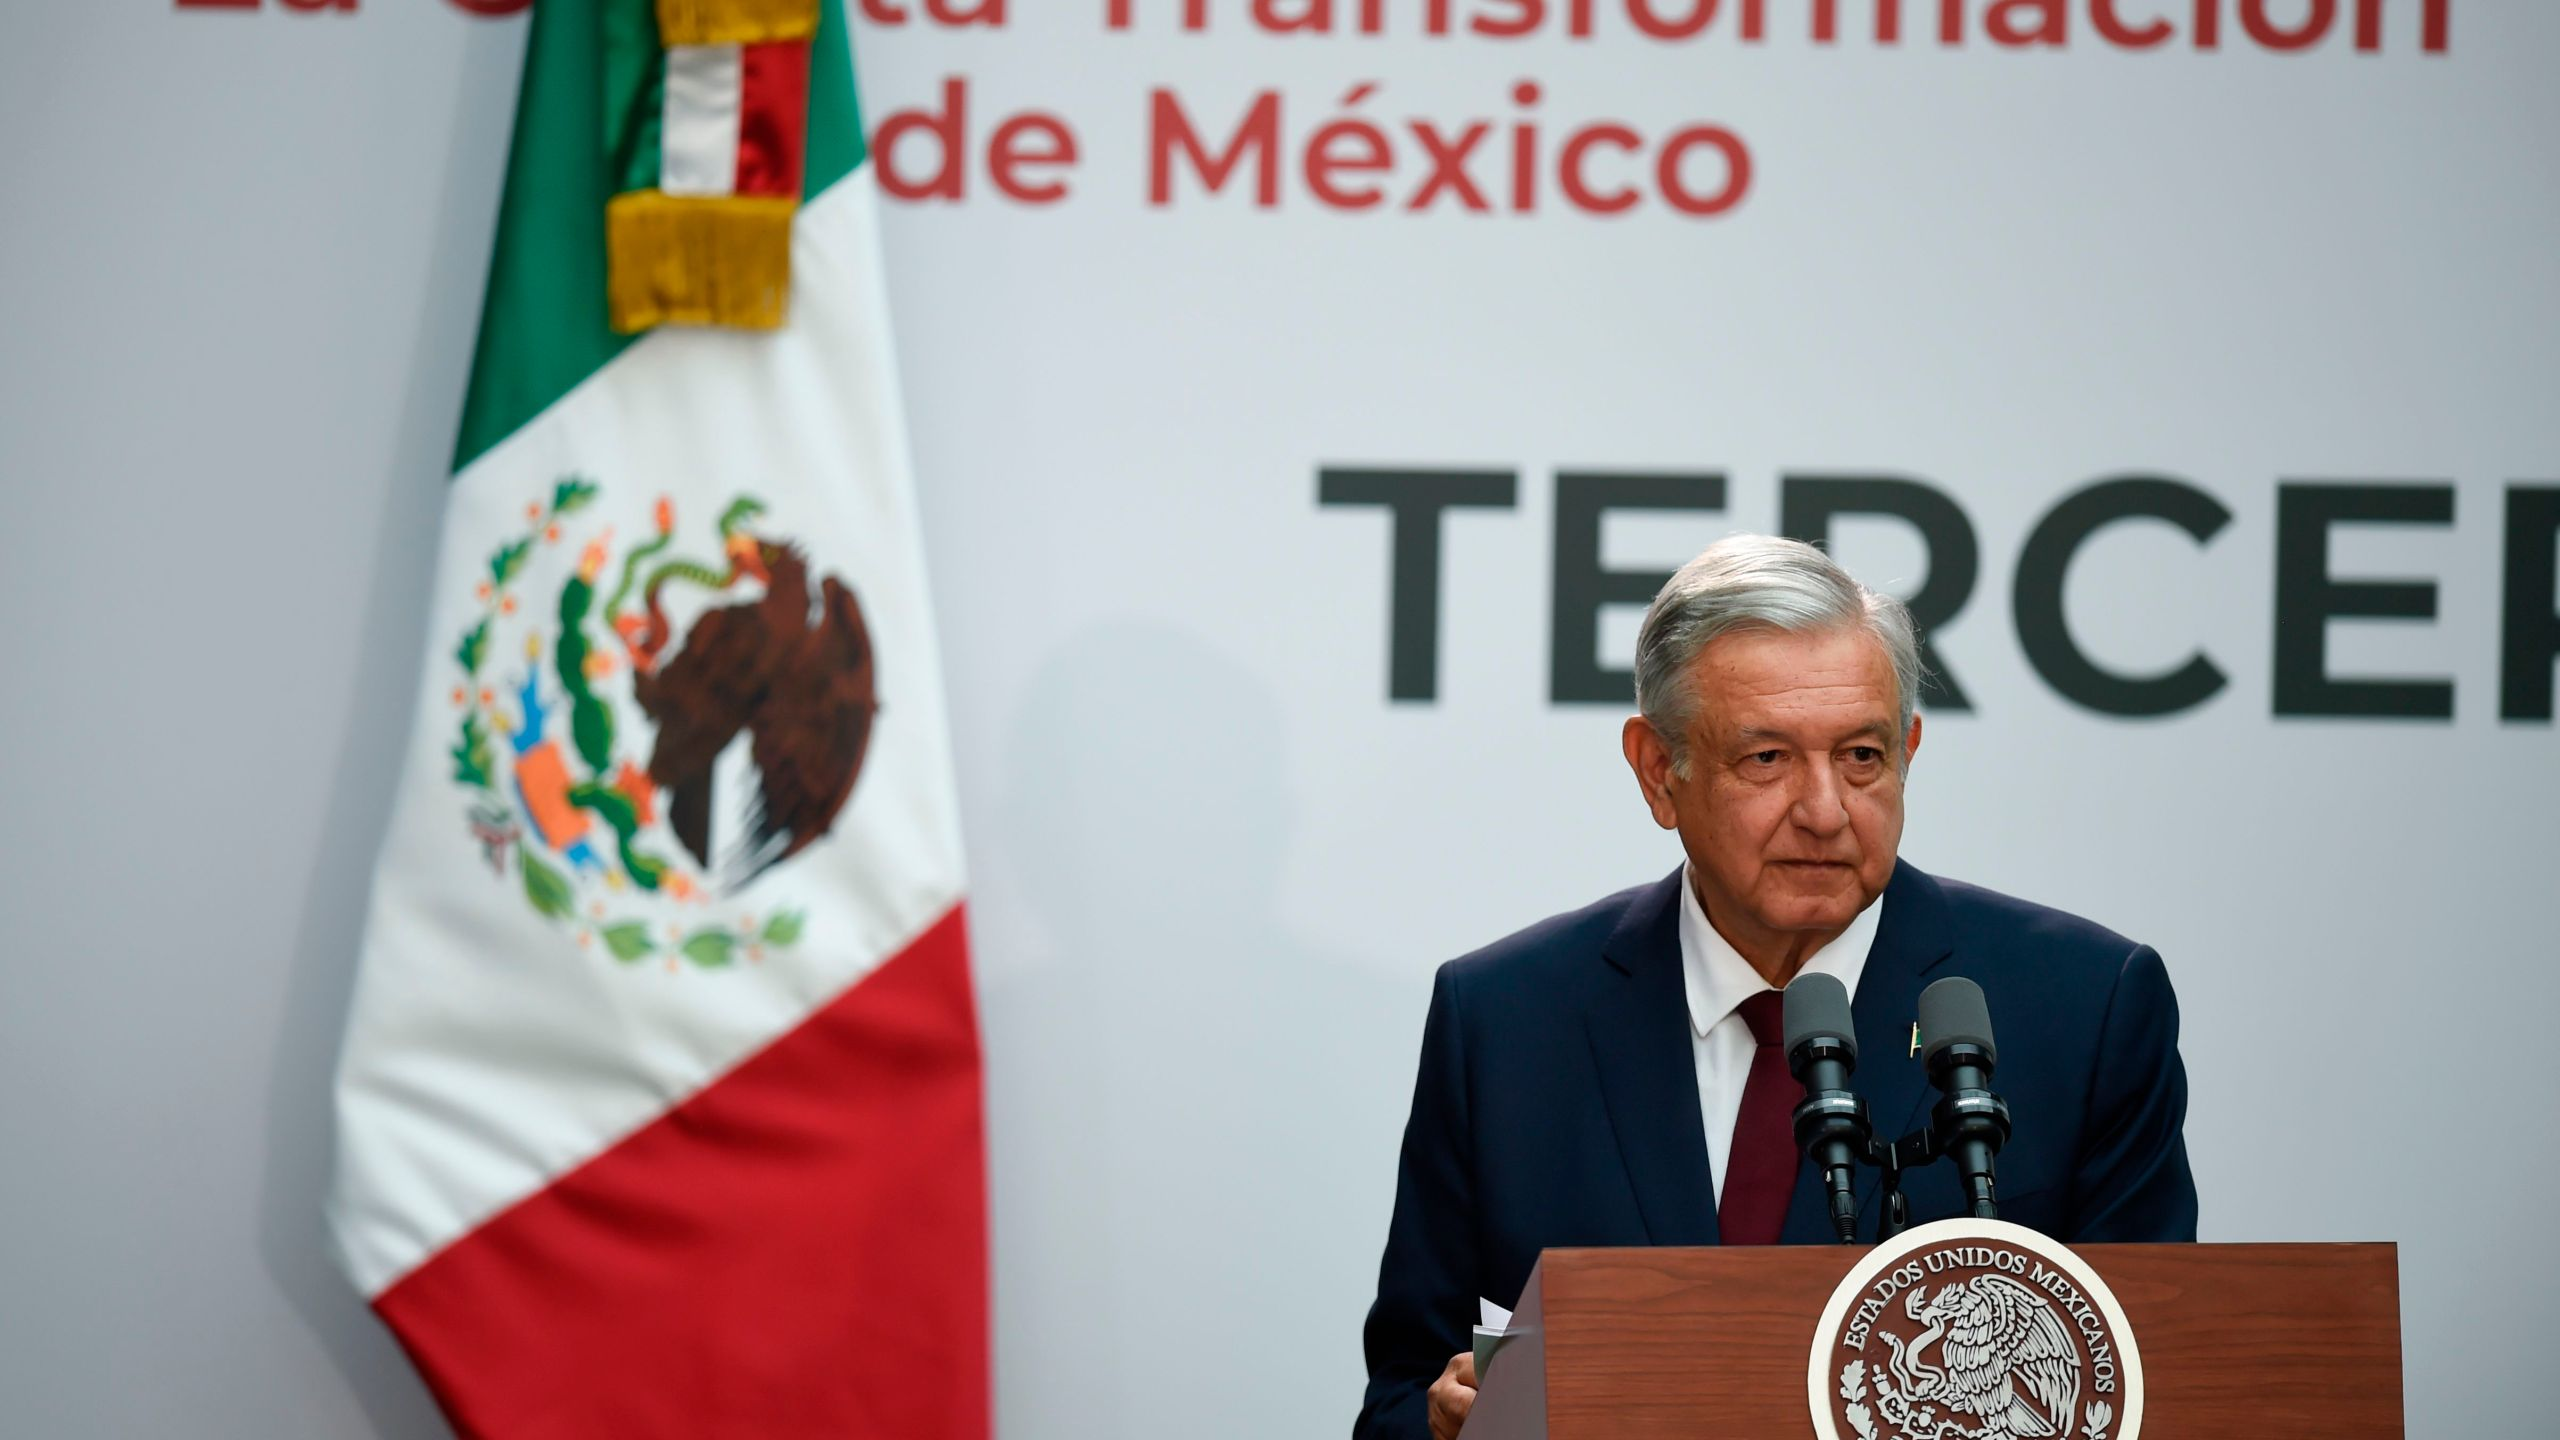 Andrés Manuel López Obrador delivers his first annual report as Mexico's president at the National Palace in Mexico City on Sept. 1, 2019. (Credit: ALFREDO ESTRELLA/AFP/Getty Images)